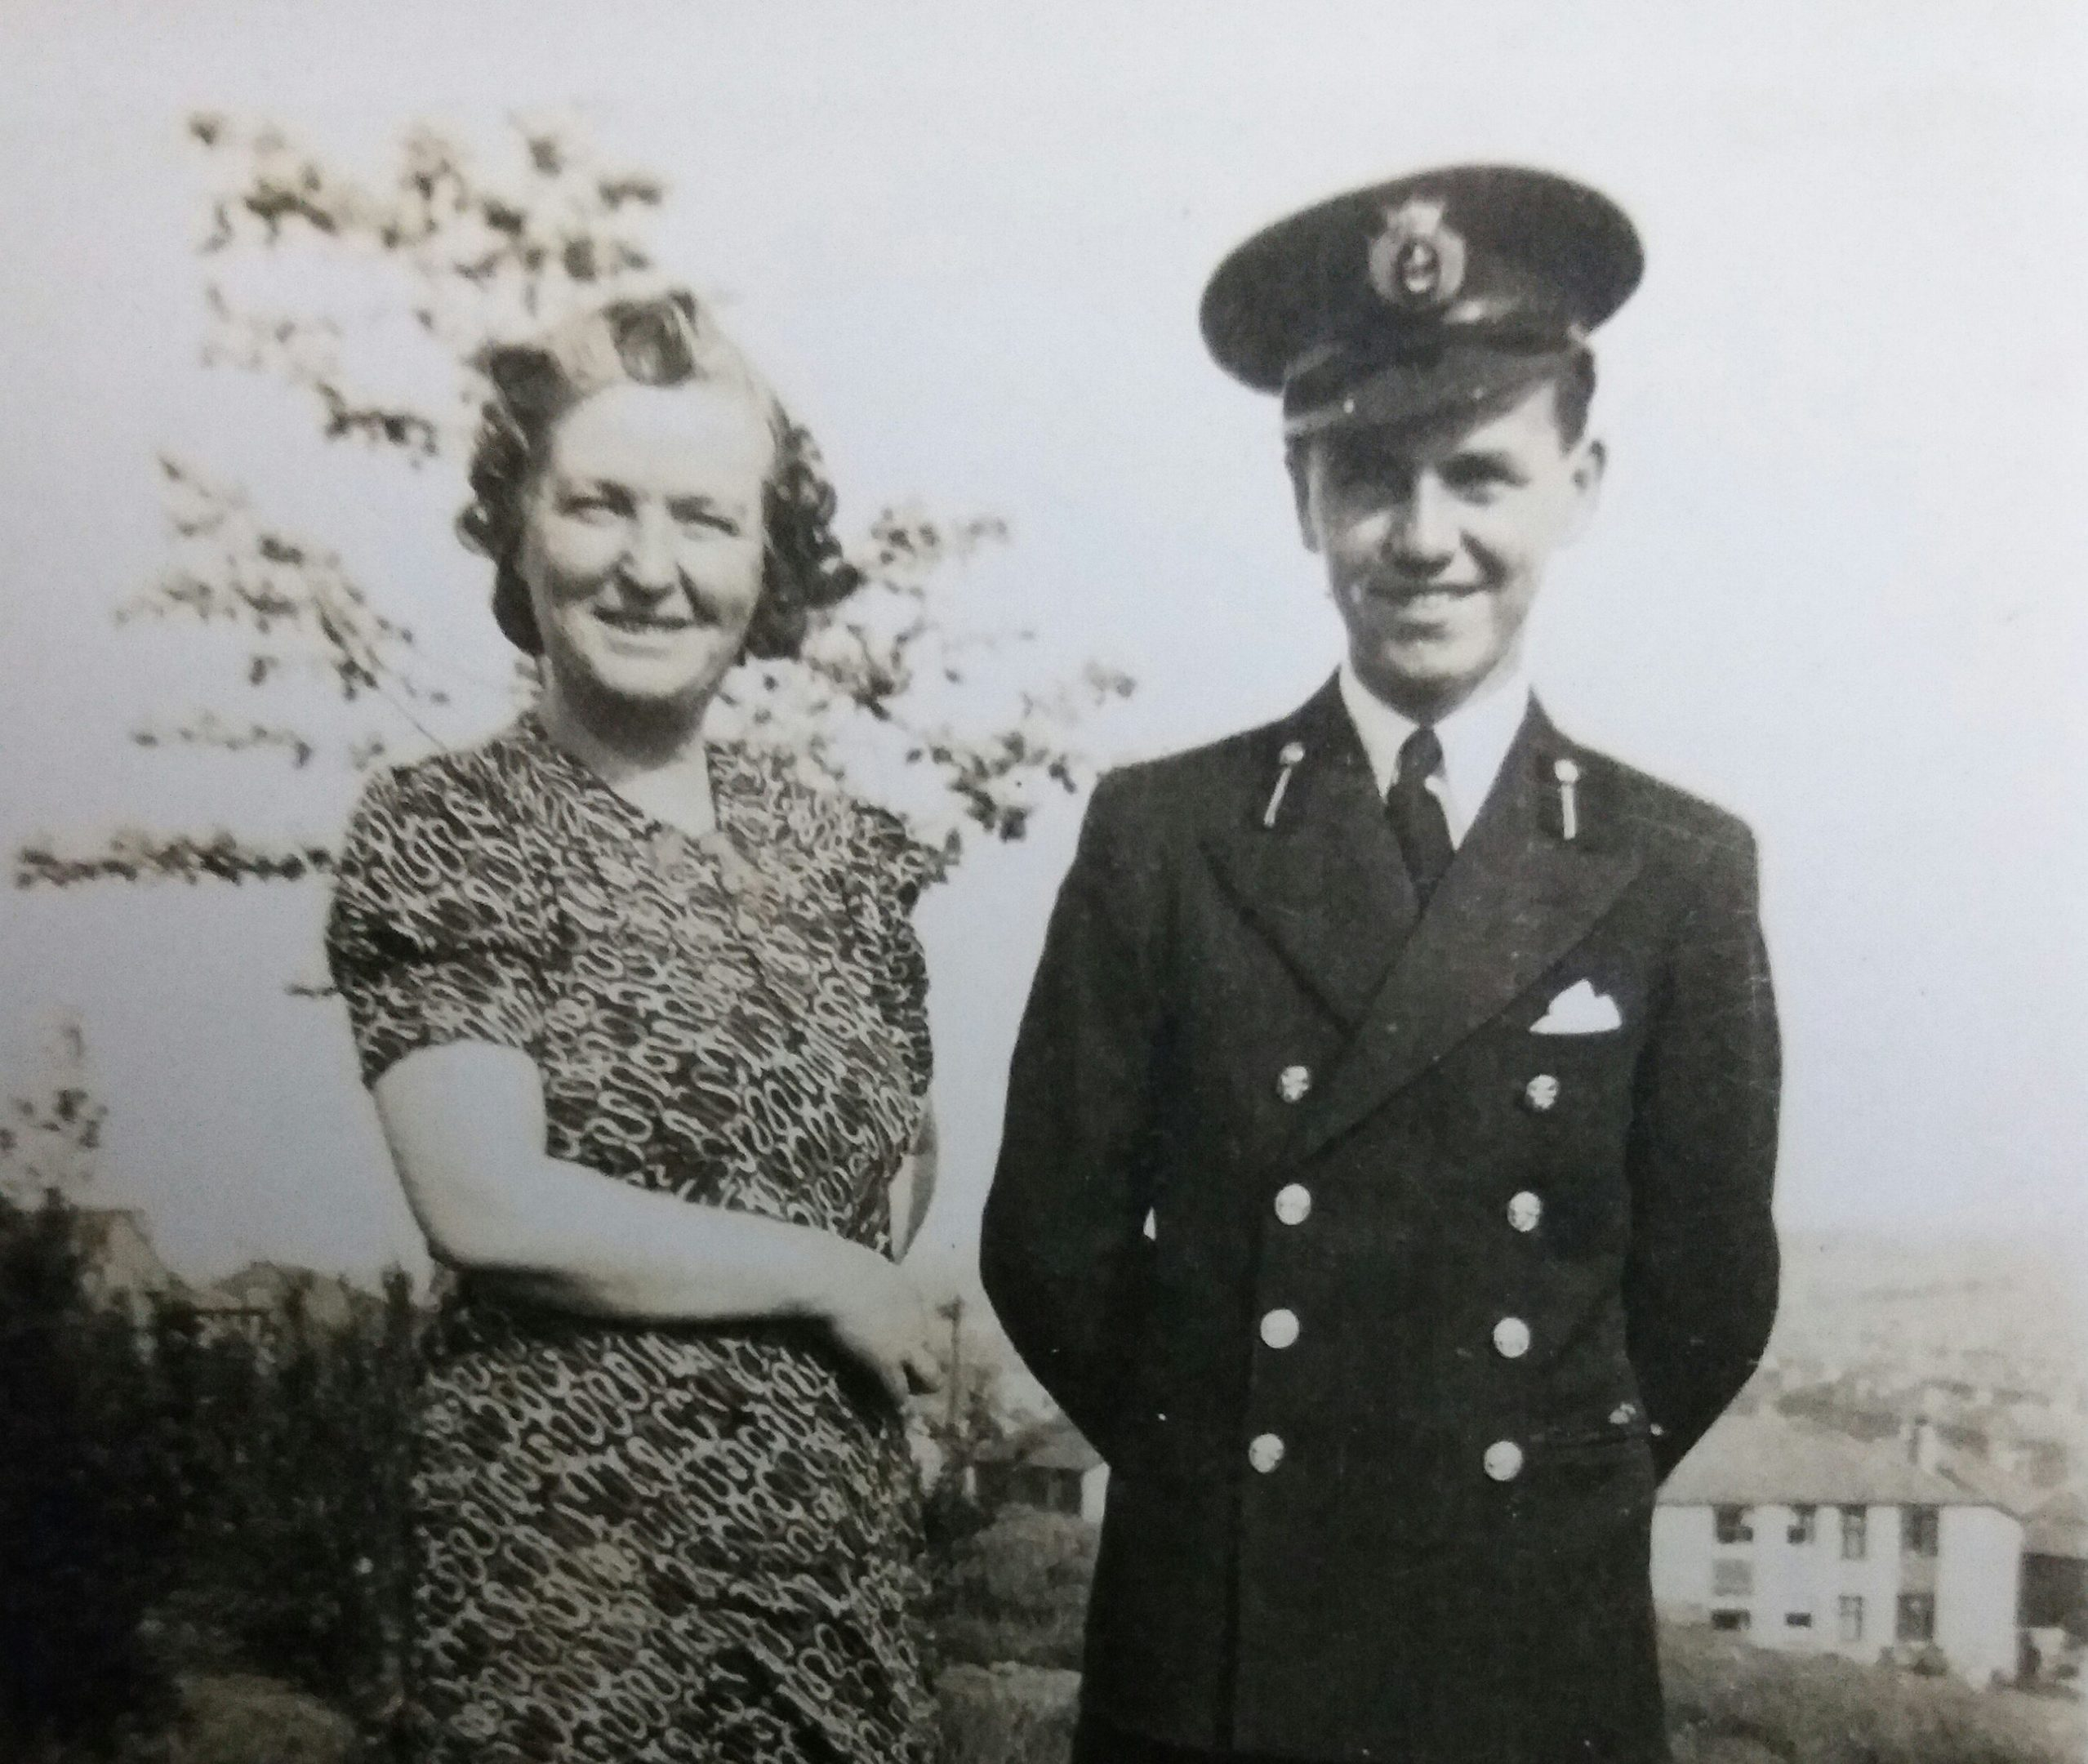 Leslie McDermott pictured with his mother, Norah, 1940.